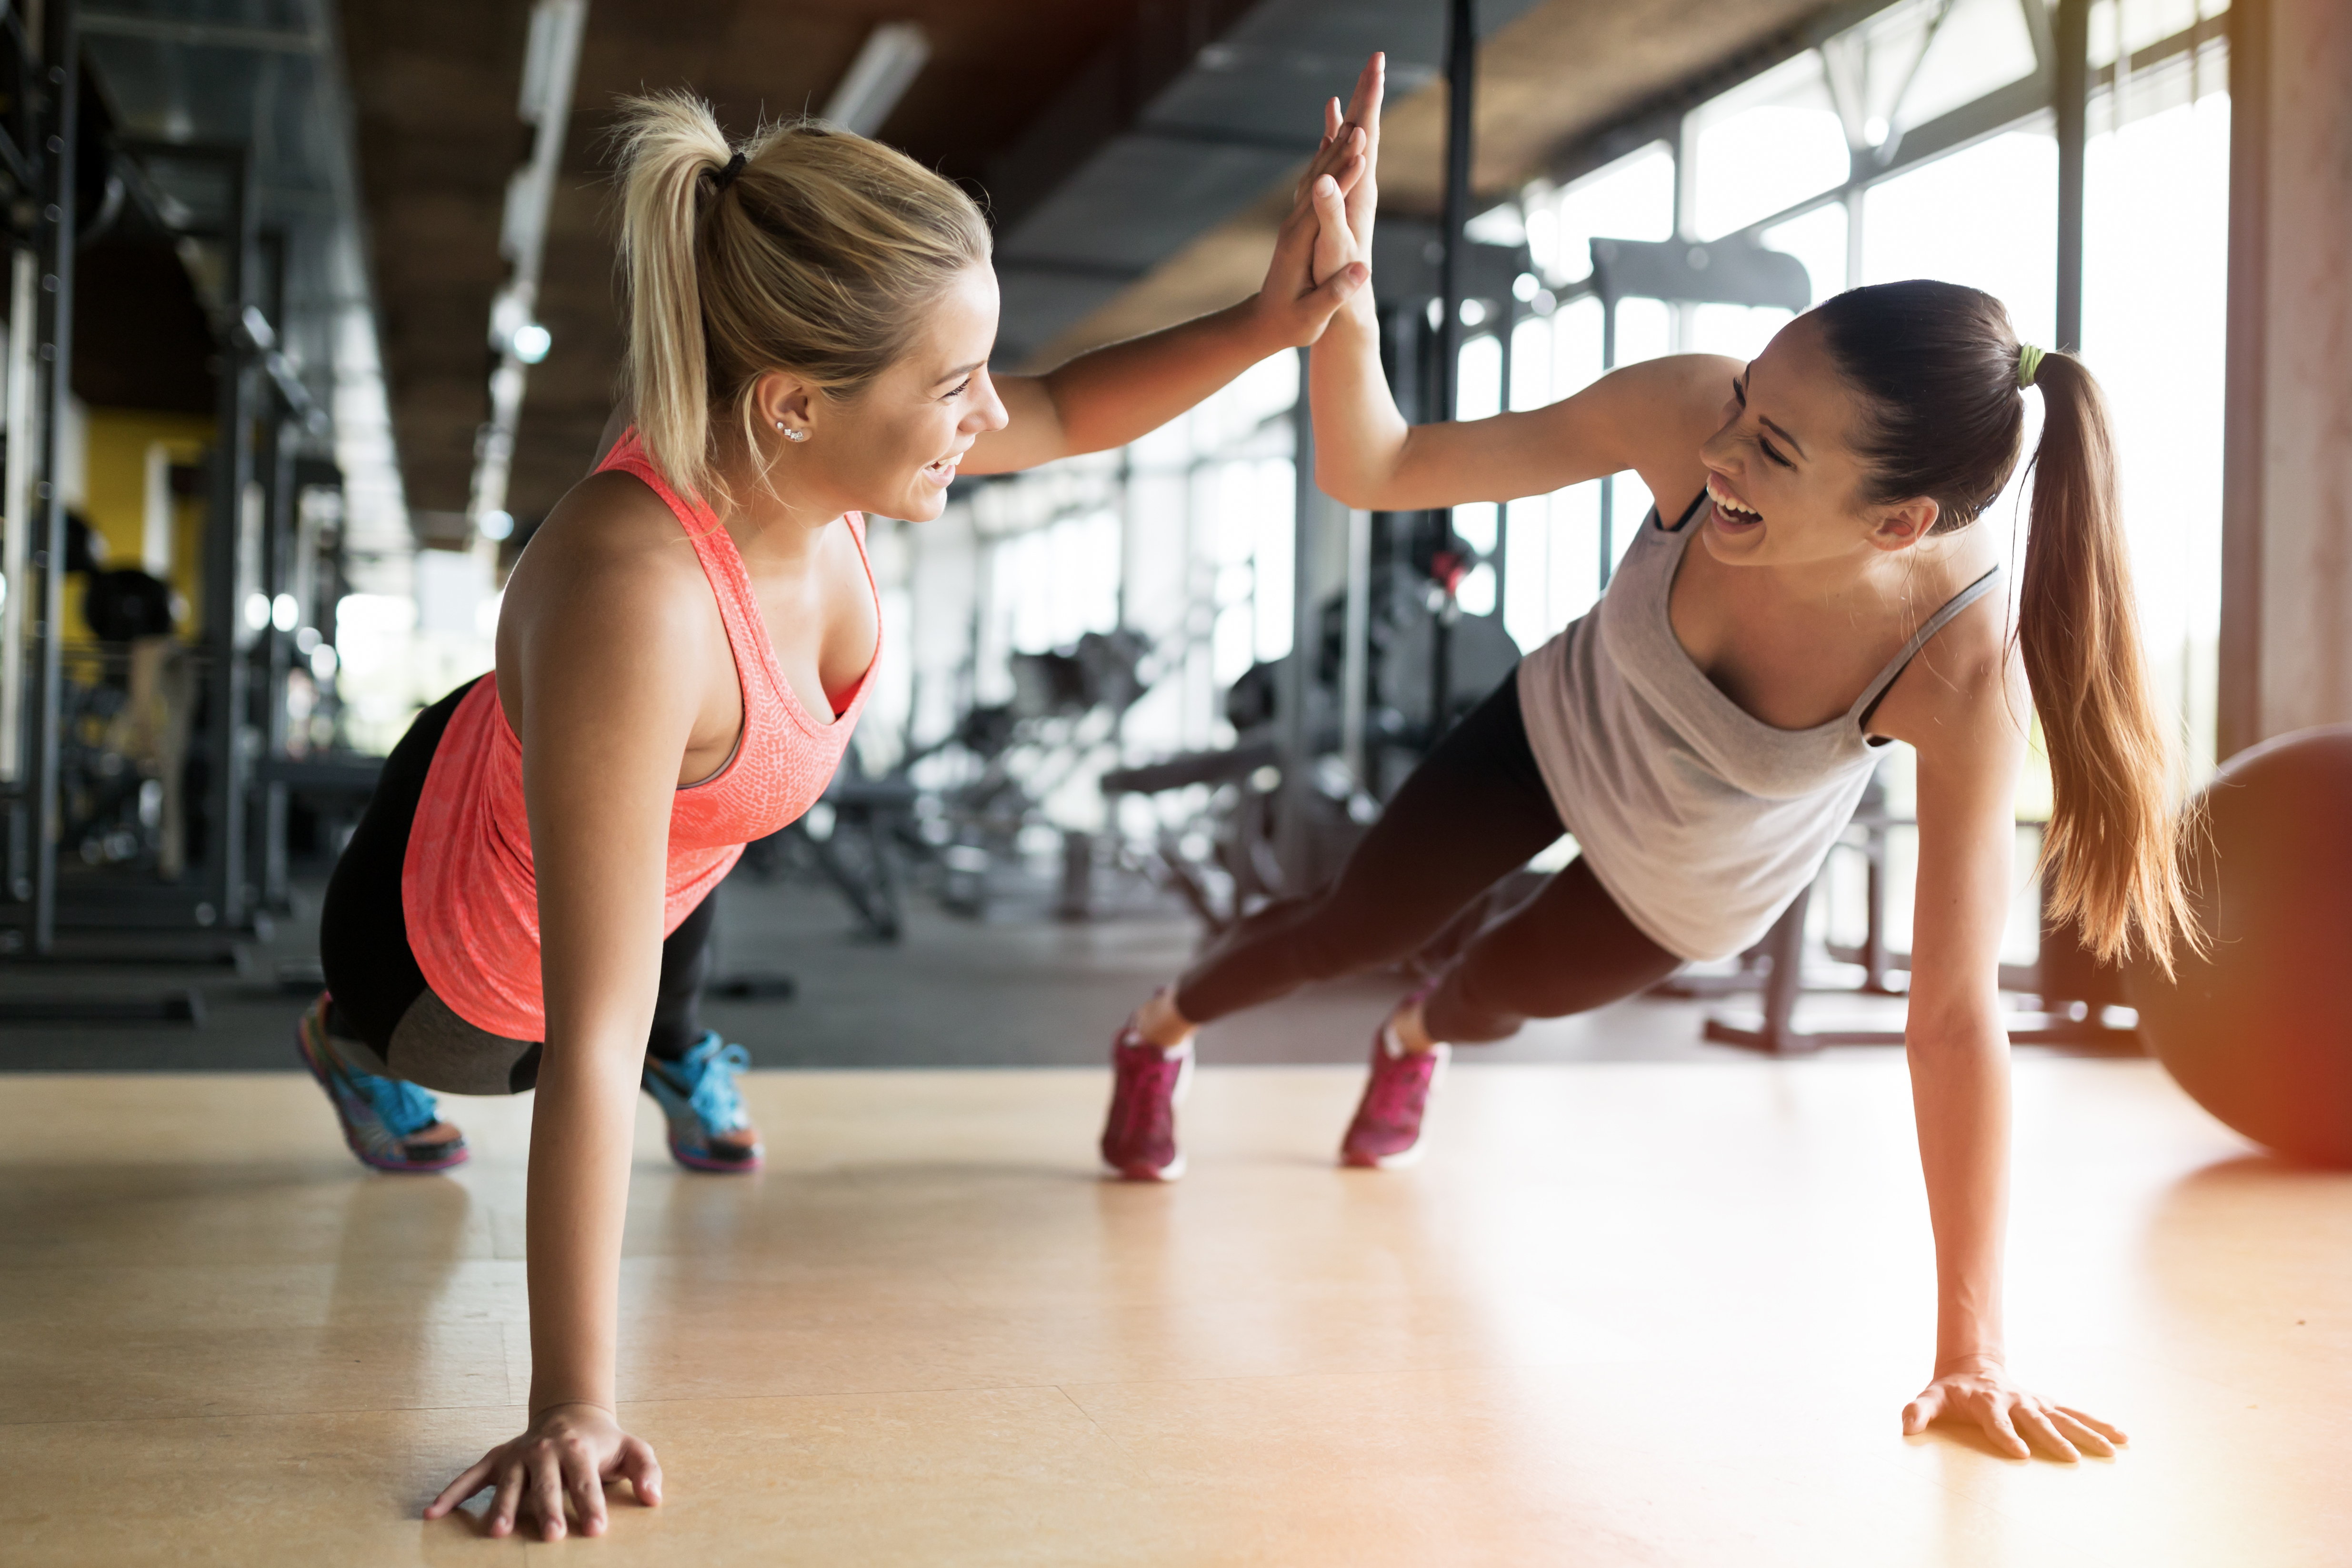 Beautiful women working out in gym toget